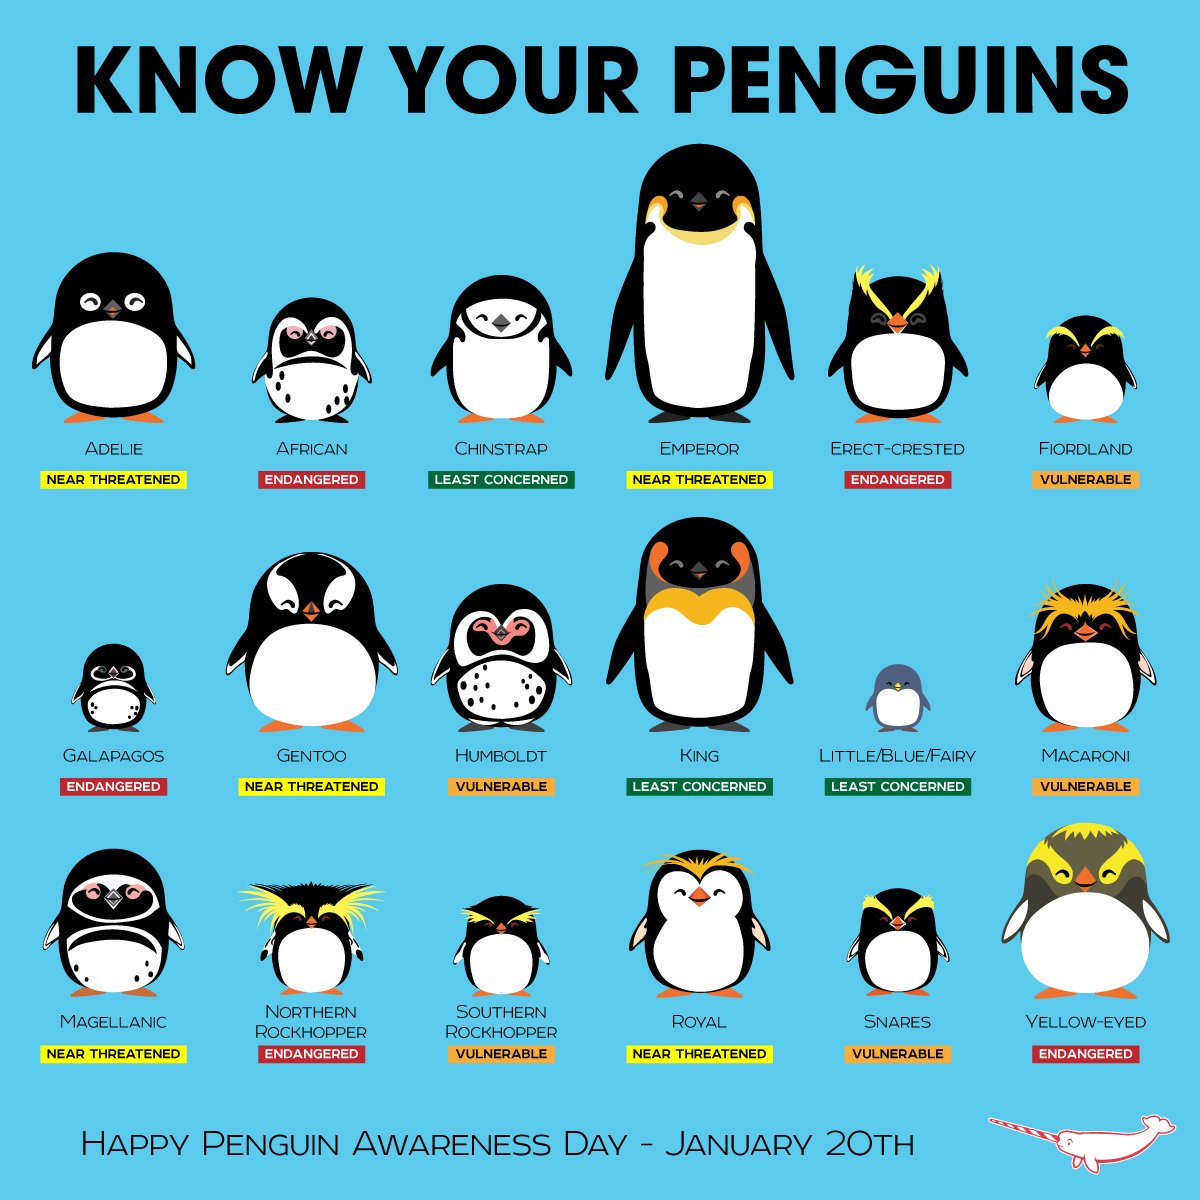 It's everybody's favourite day, #PenguinAwarenessDay! So it's important to know your penguins. Spot them too https://t.co/zDq02NNos0 (Pic - )